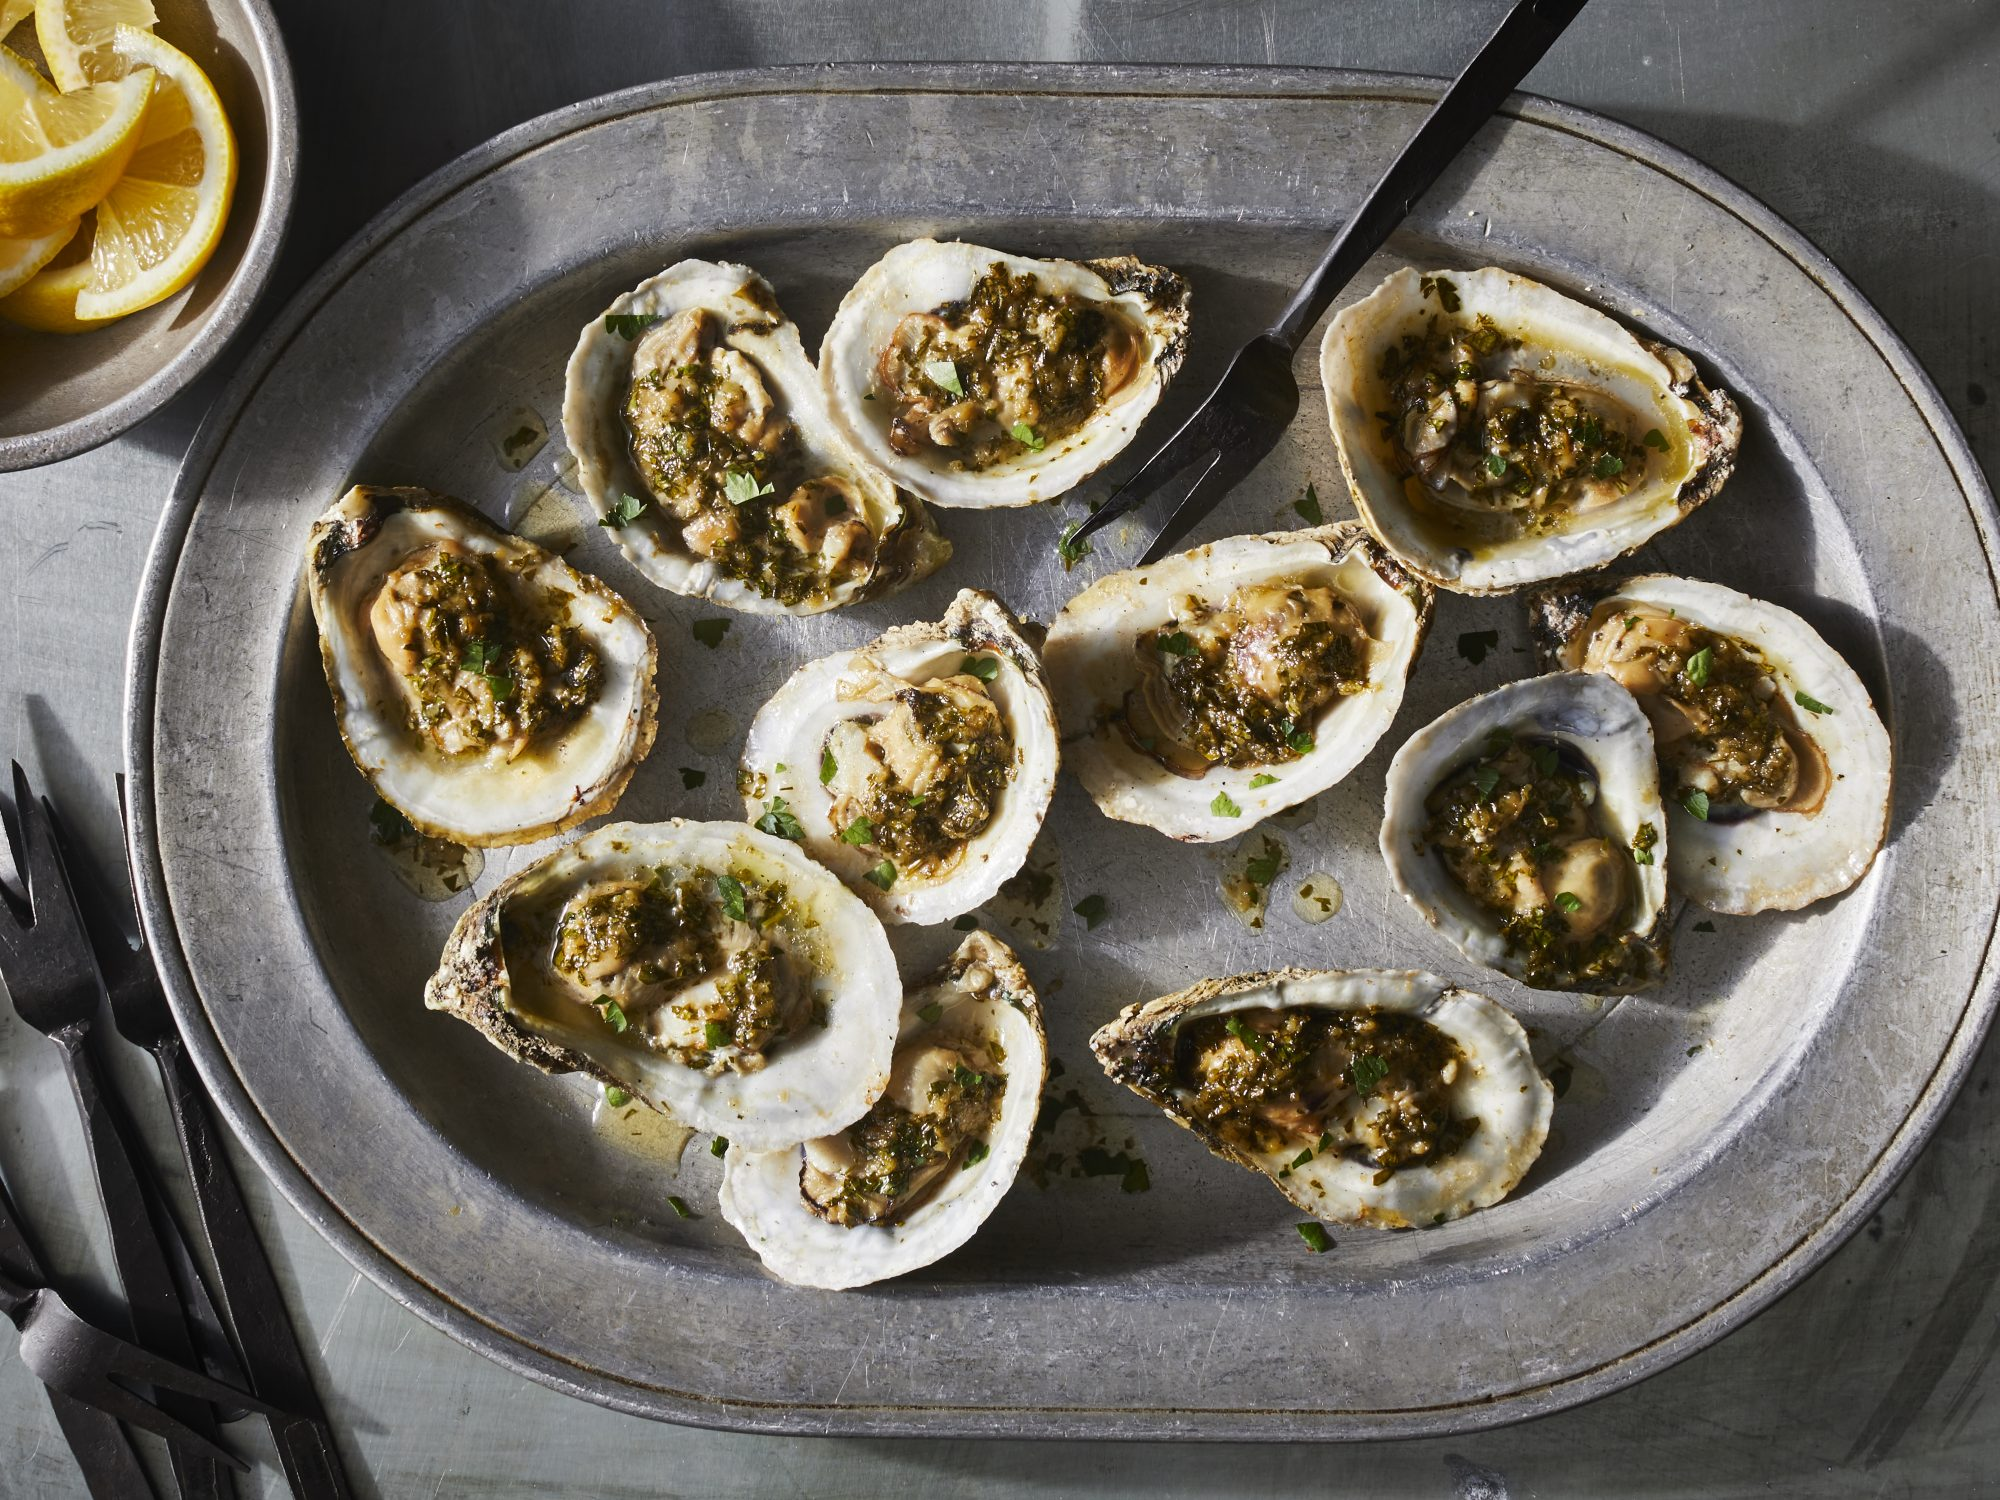 Grilled-Oysters-FT-Recipe2019350.jpg